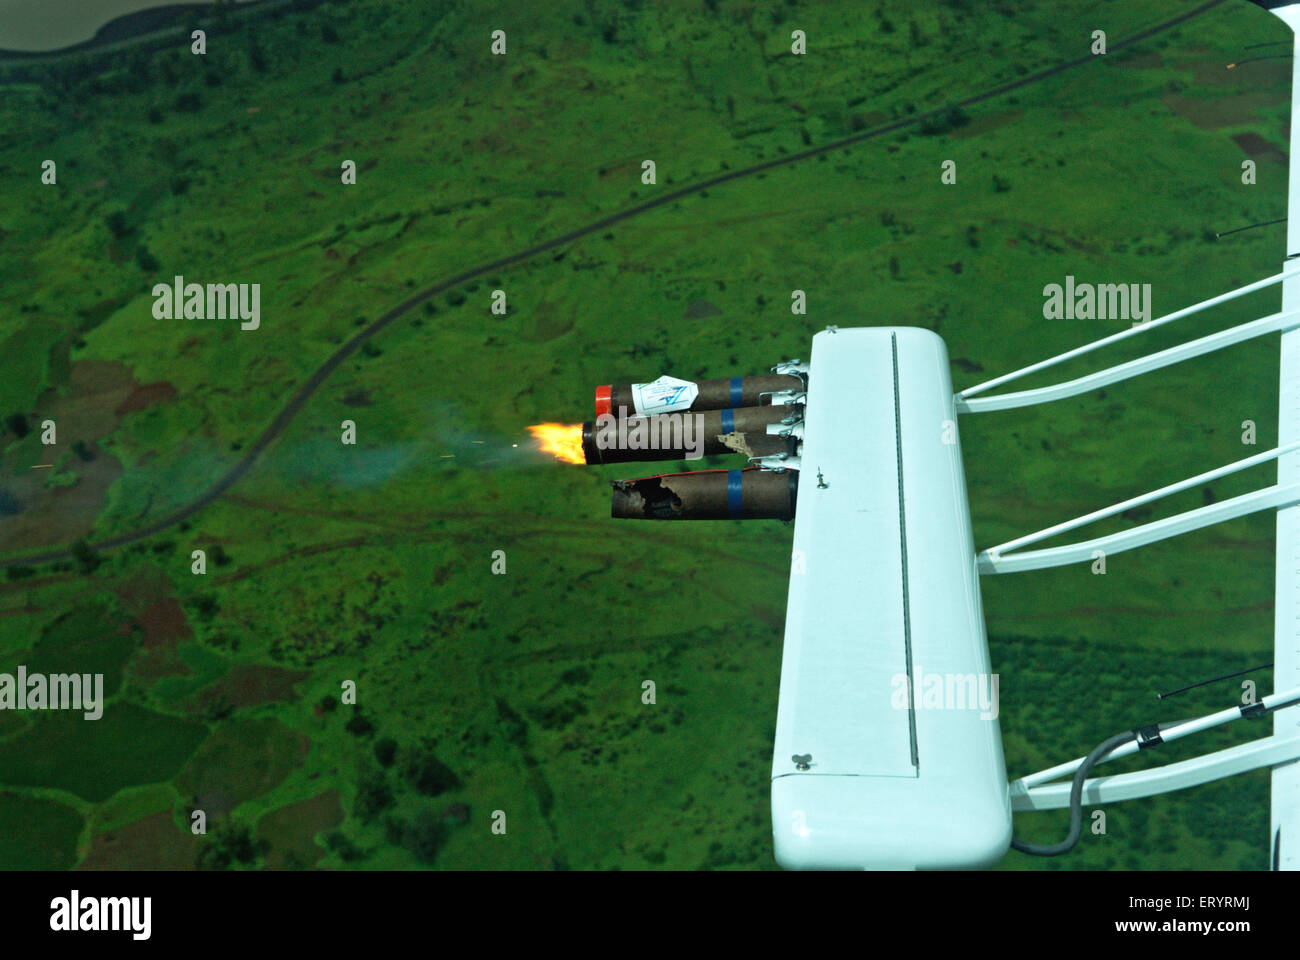 Cloud seeding by piper aircraft ; Nashik ; Maharashtra ; India - Stock Image